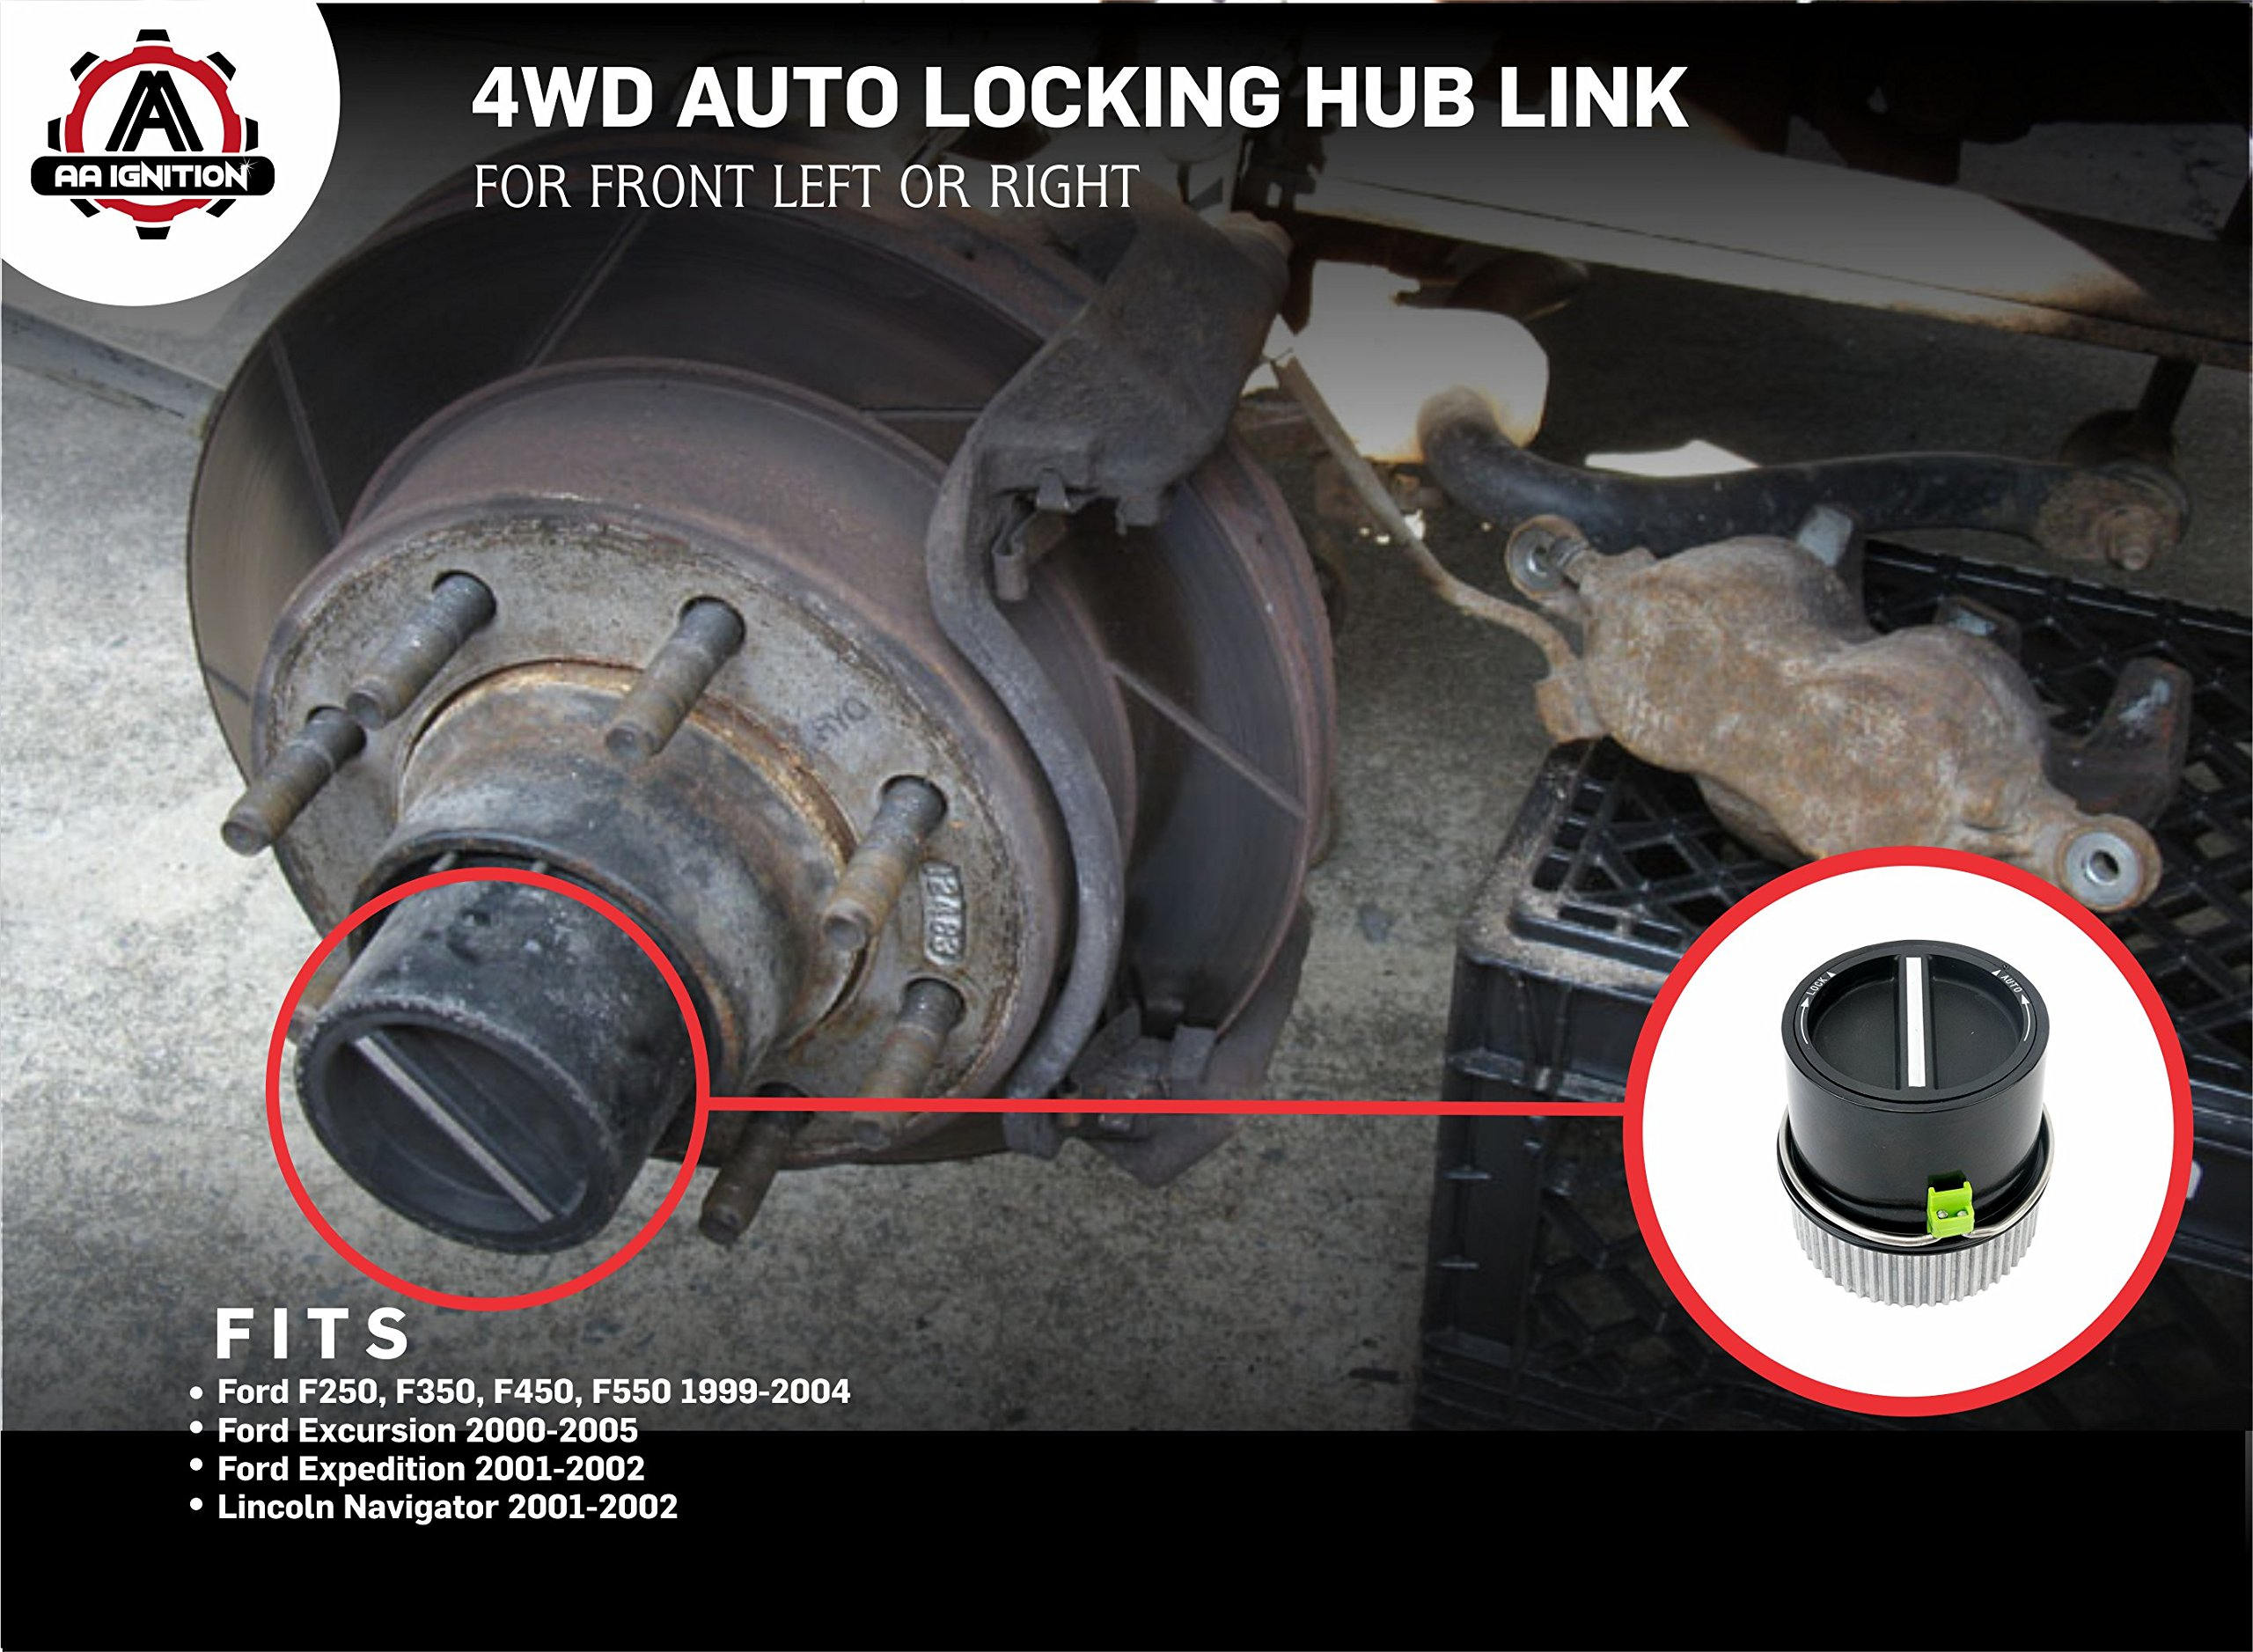 4wd Auto Locking Hub Link Front Left Or Right Replaces 1c3z 2004 Ford F550 Super Duty 3b396 Cb Fits 1999 F250 F350 F450 2000 2005 Excursion